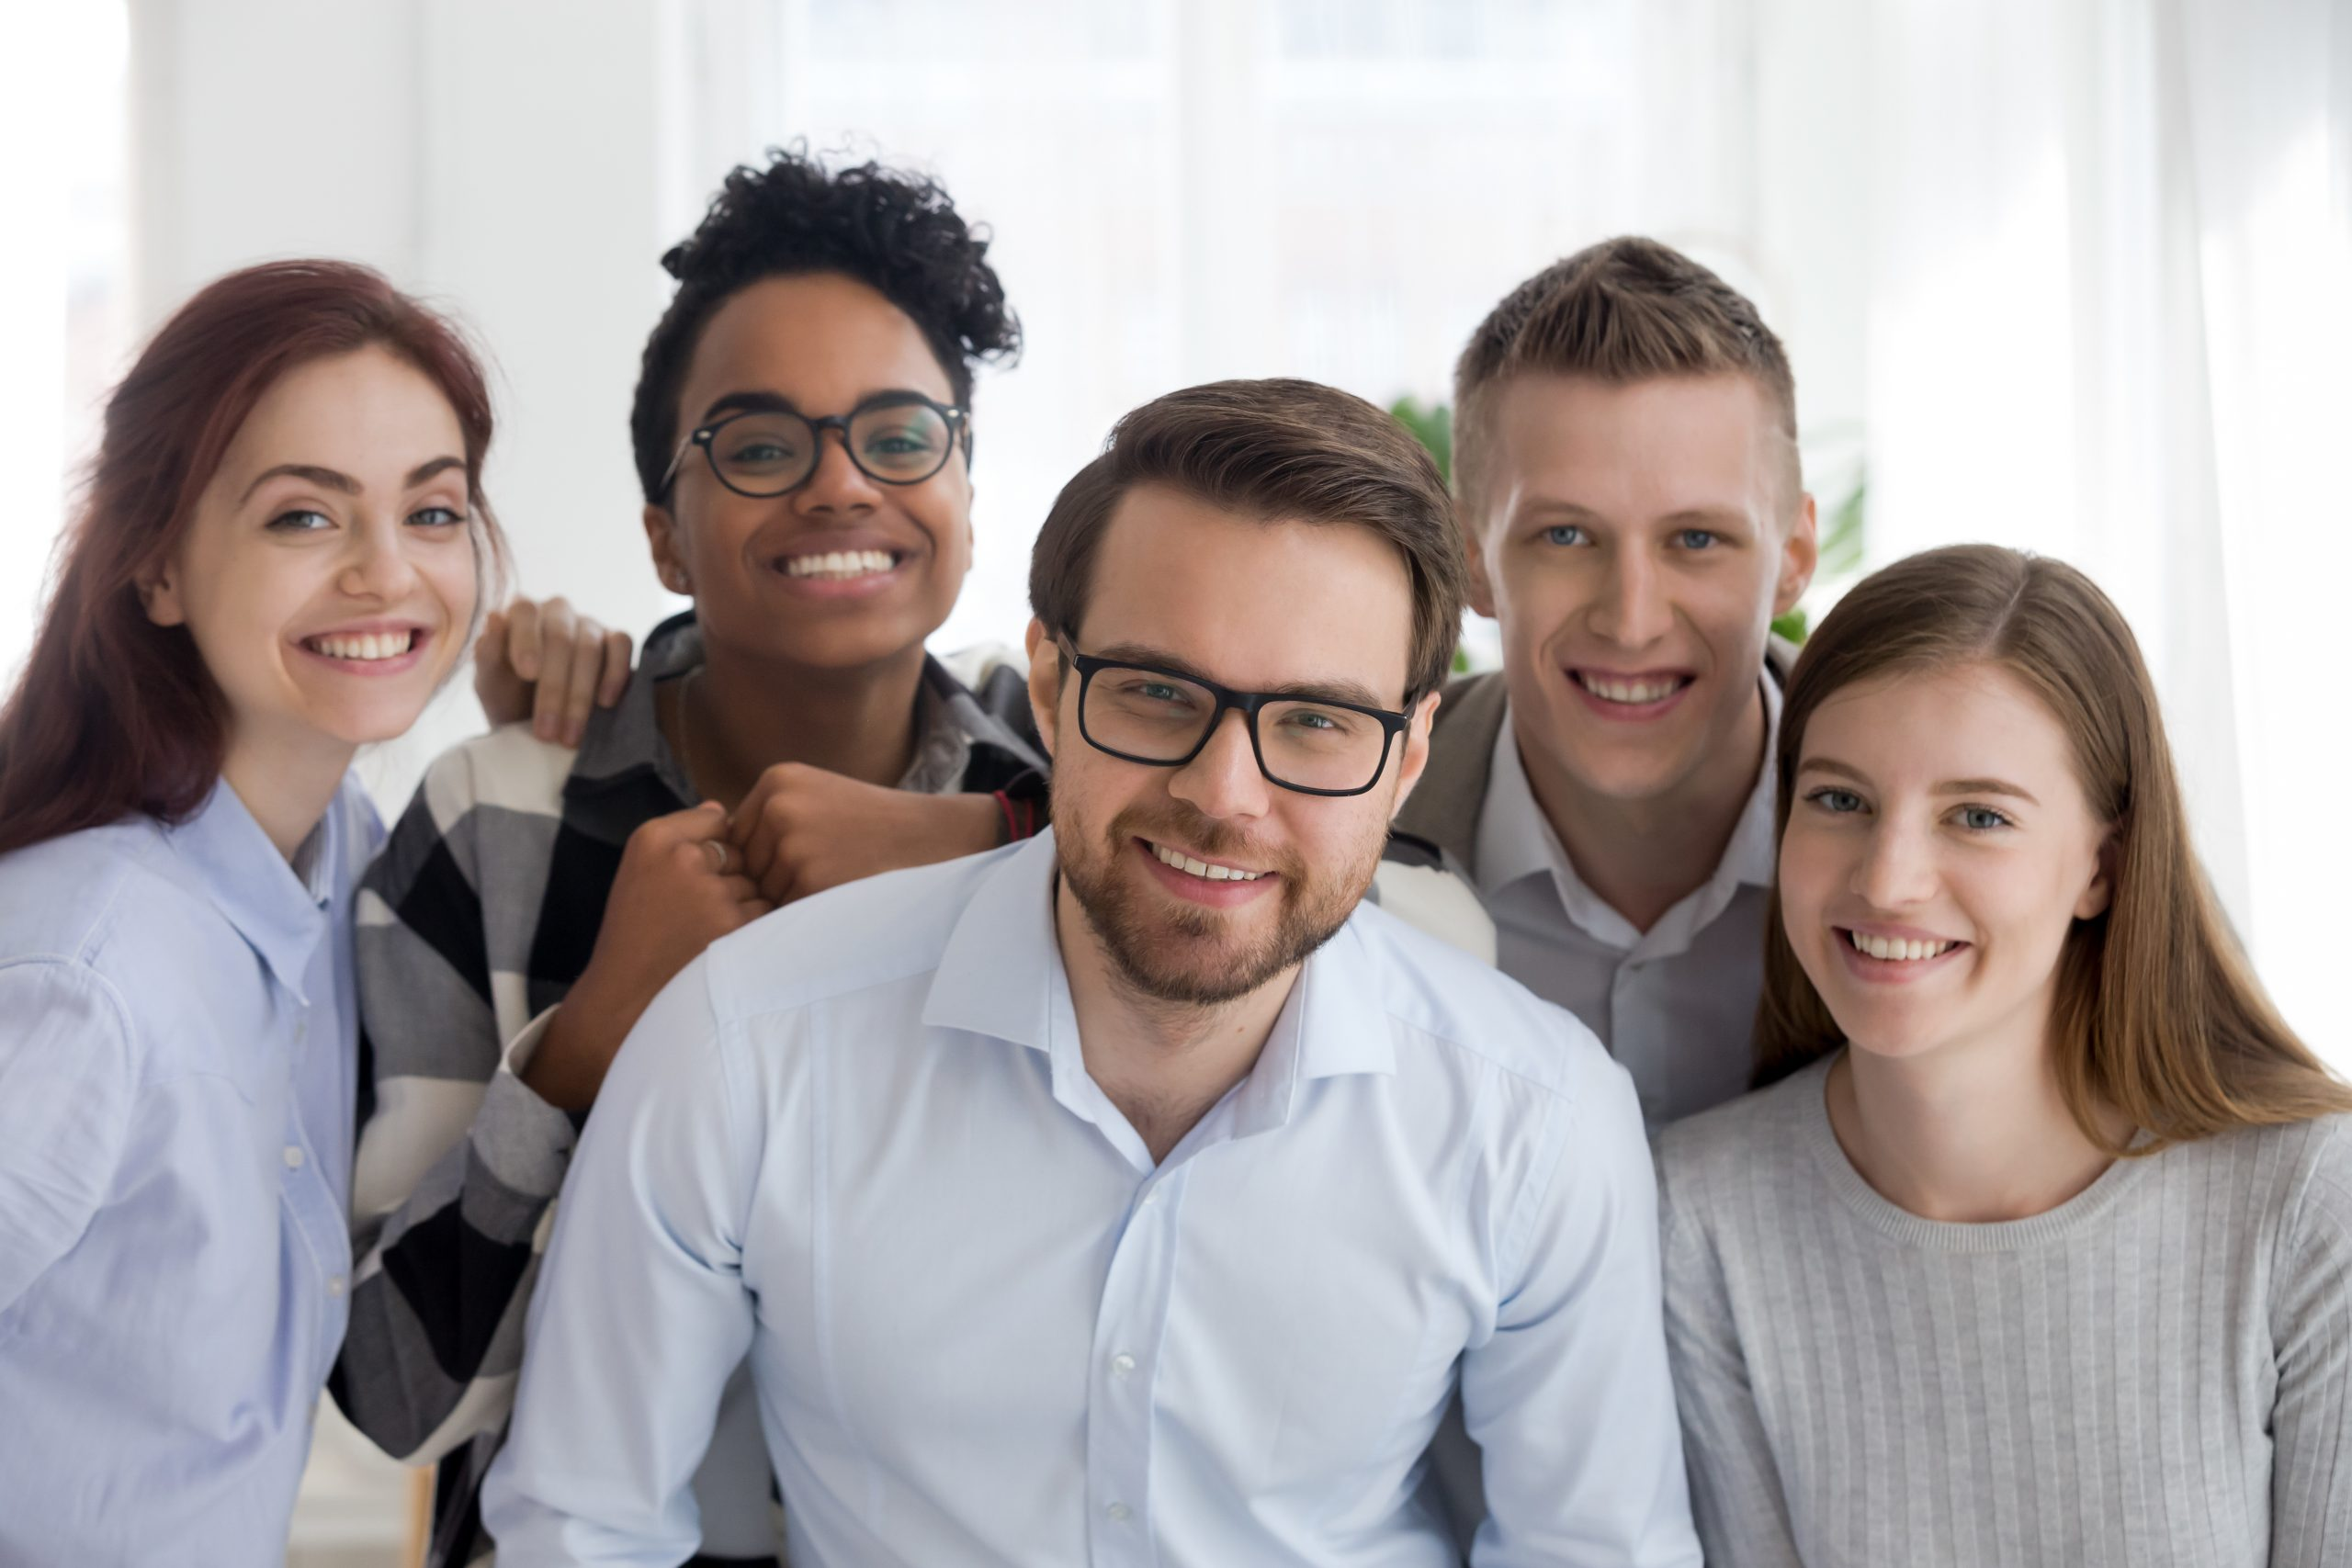 Portrait of smiling diverse millennial team posing together